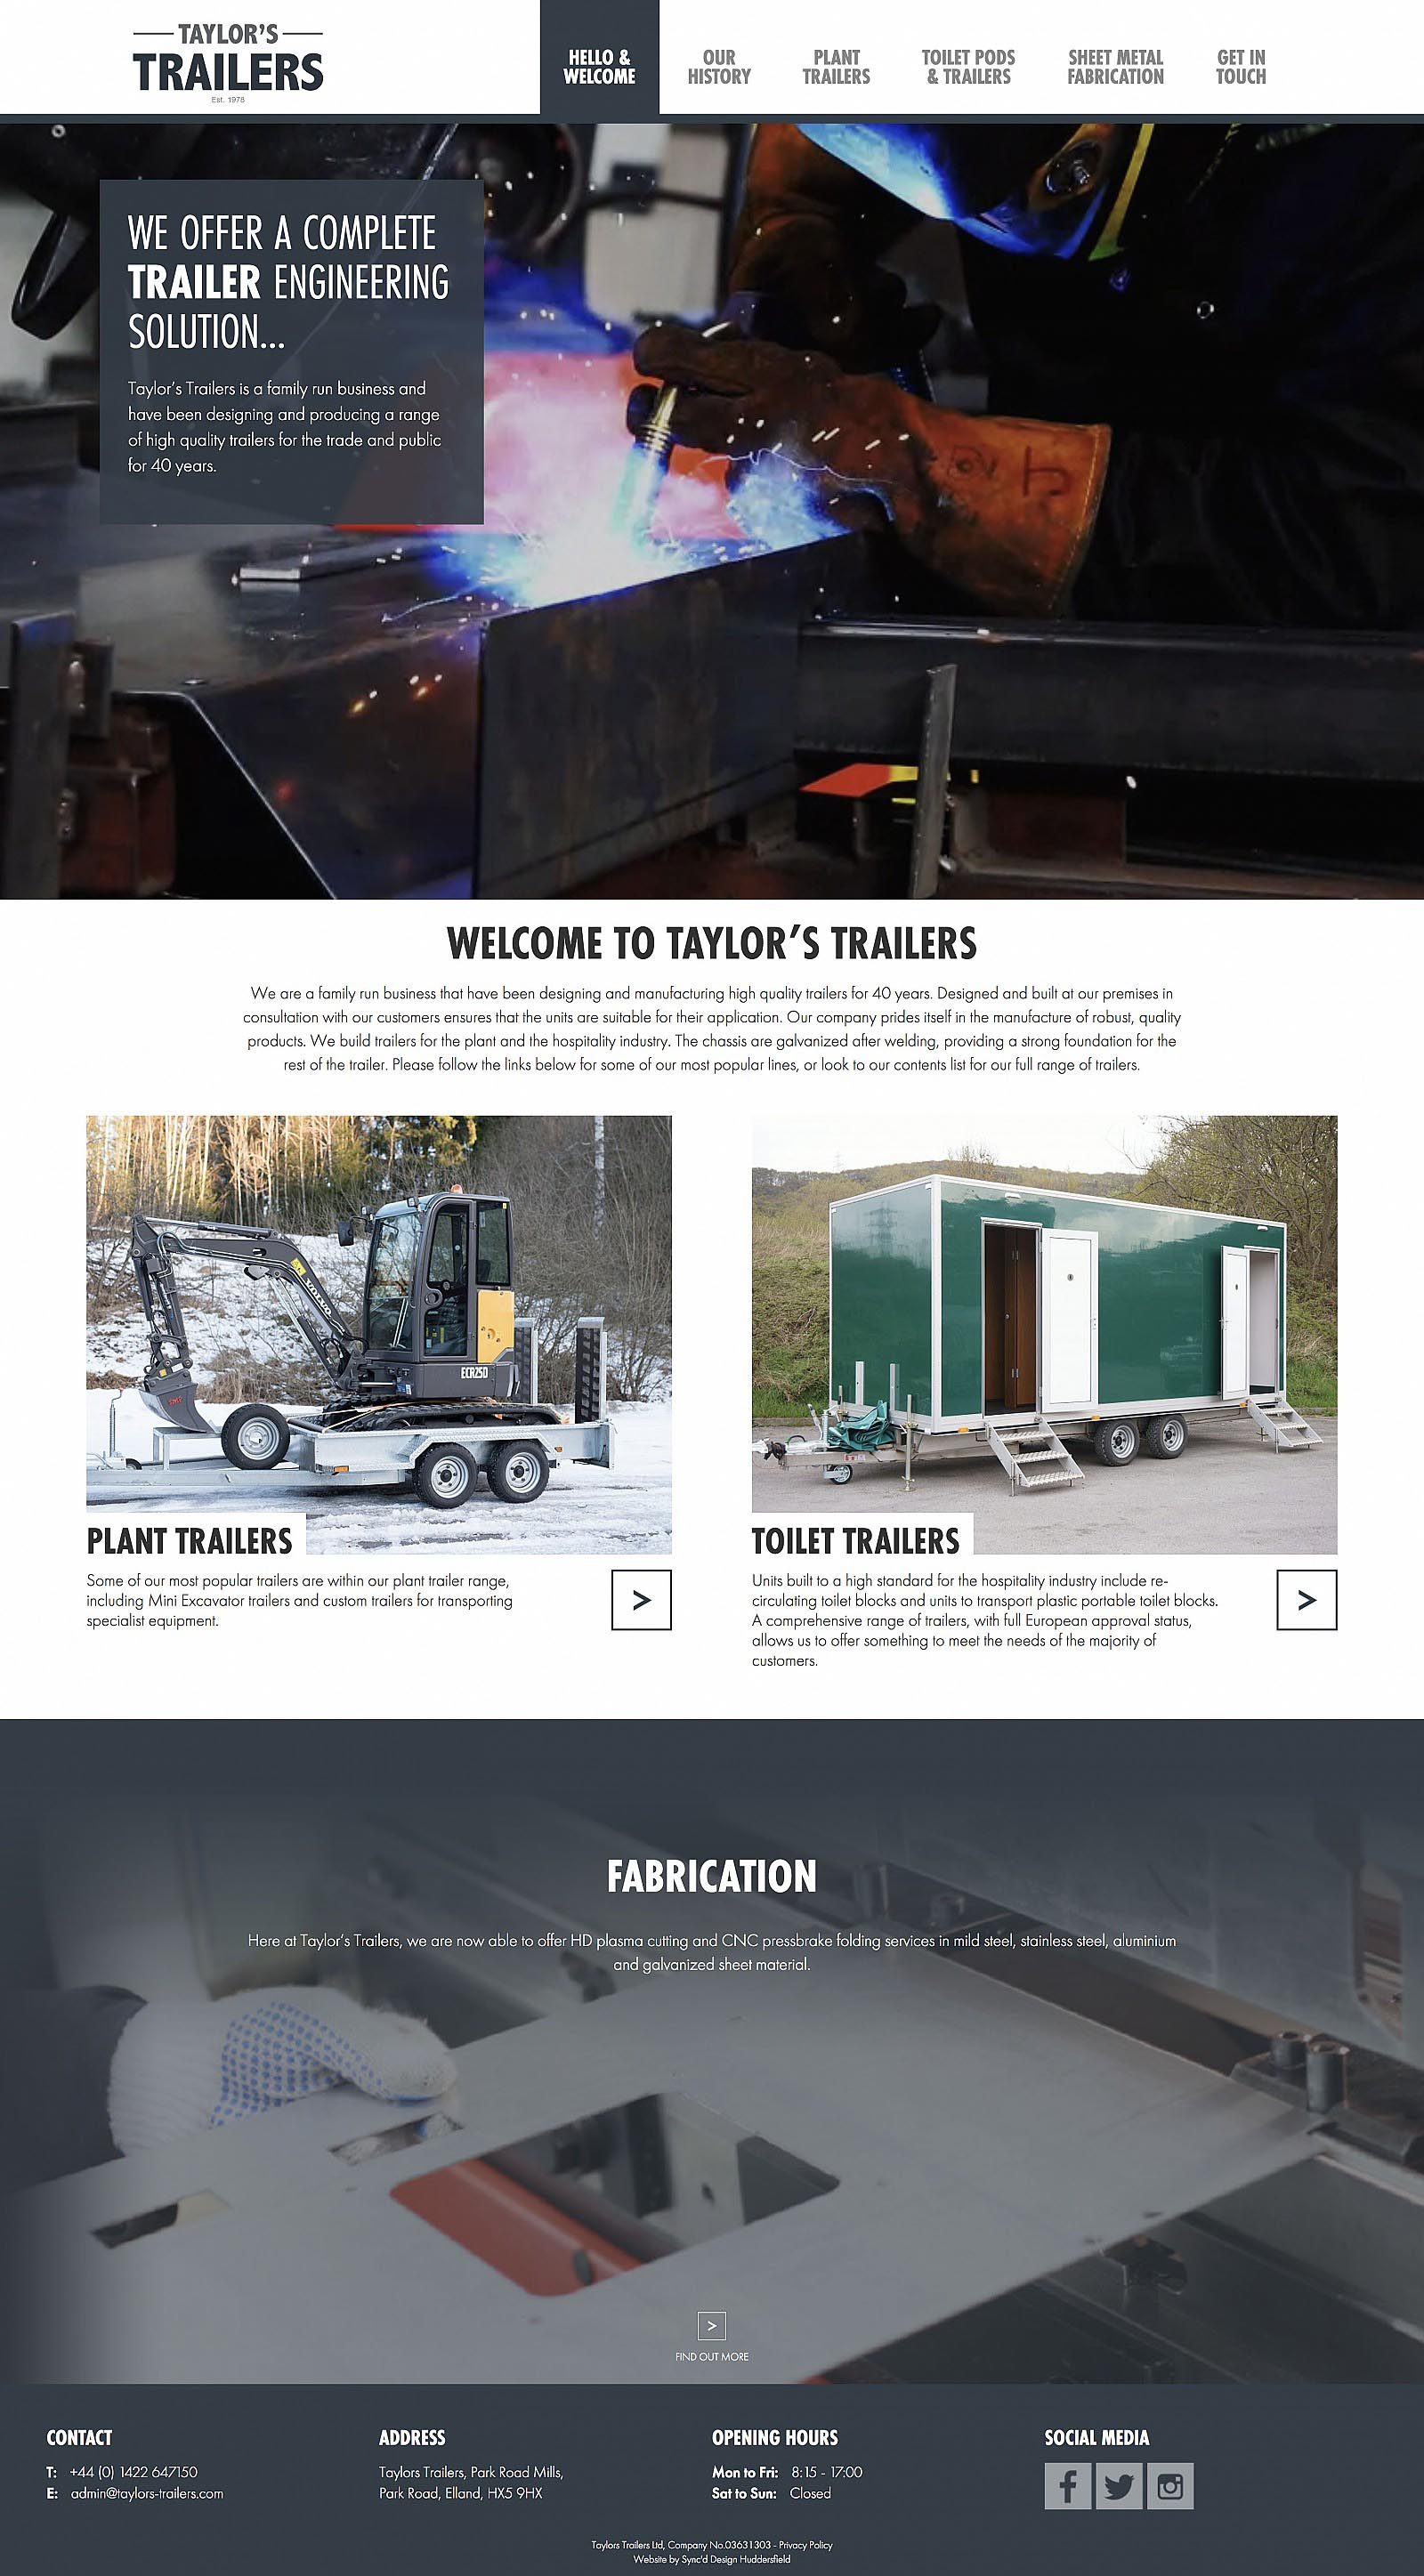 Taylors Trailers Home Page